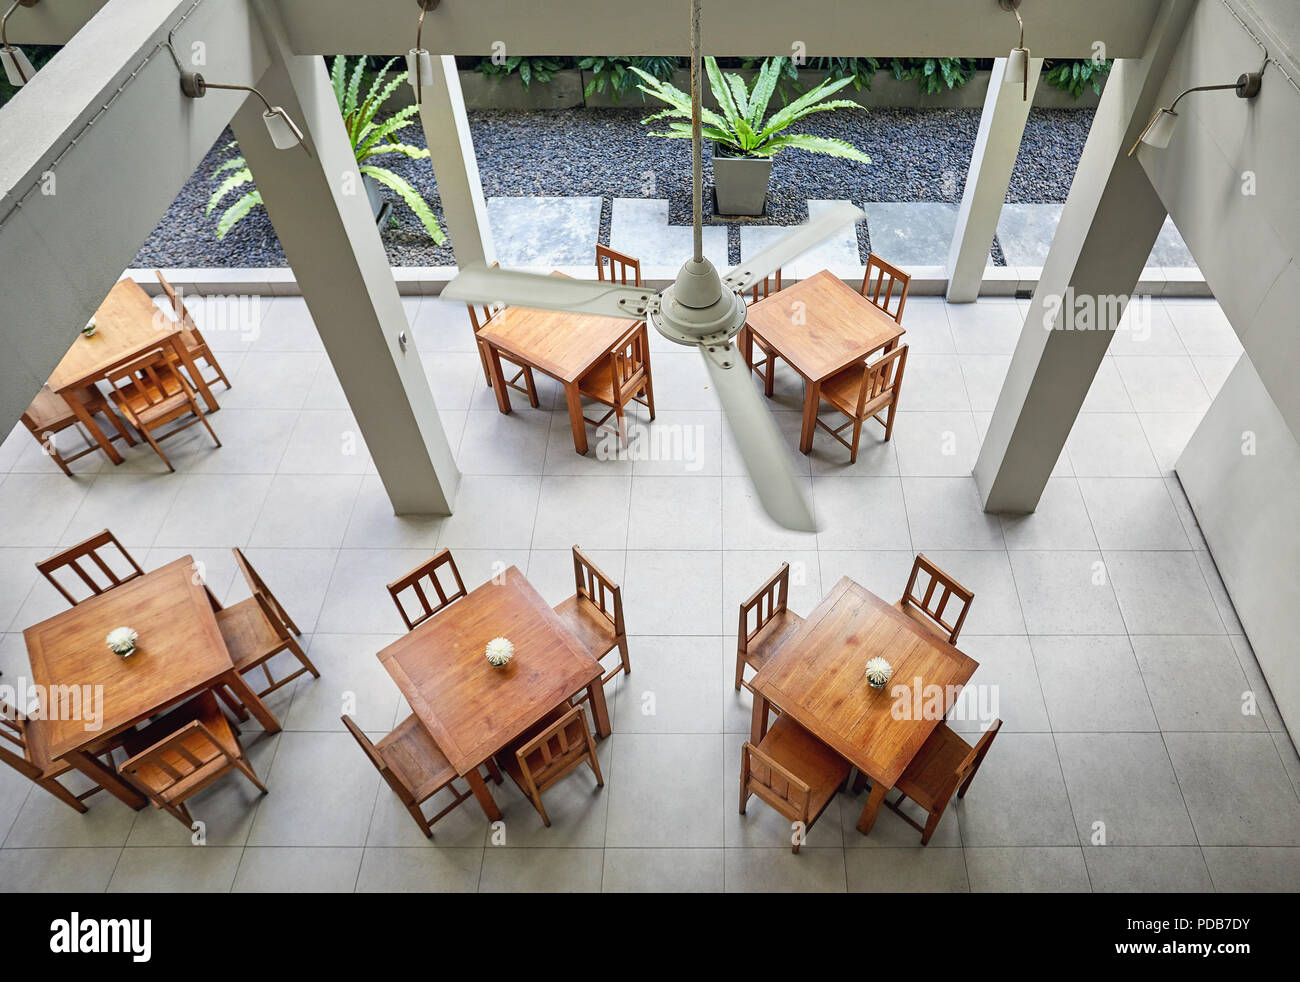 Aerial view of tables and chair in empty cafe of the hotel. Loft interior concept. - Stock Image